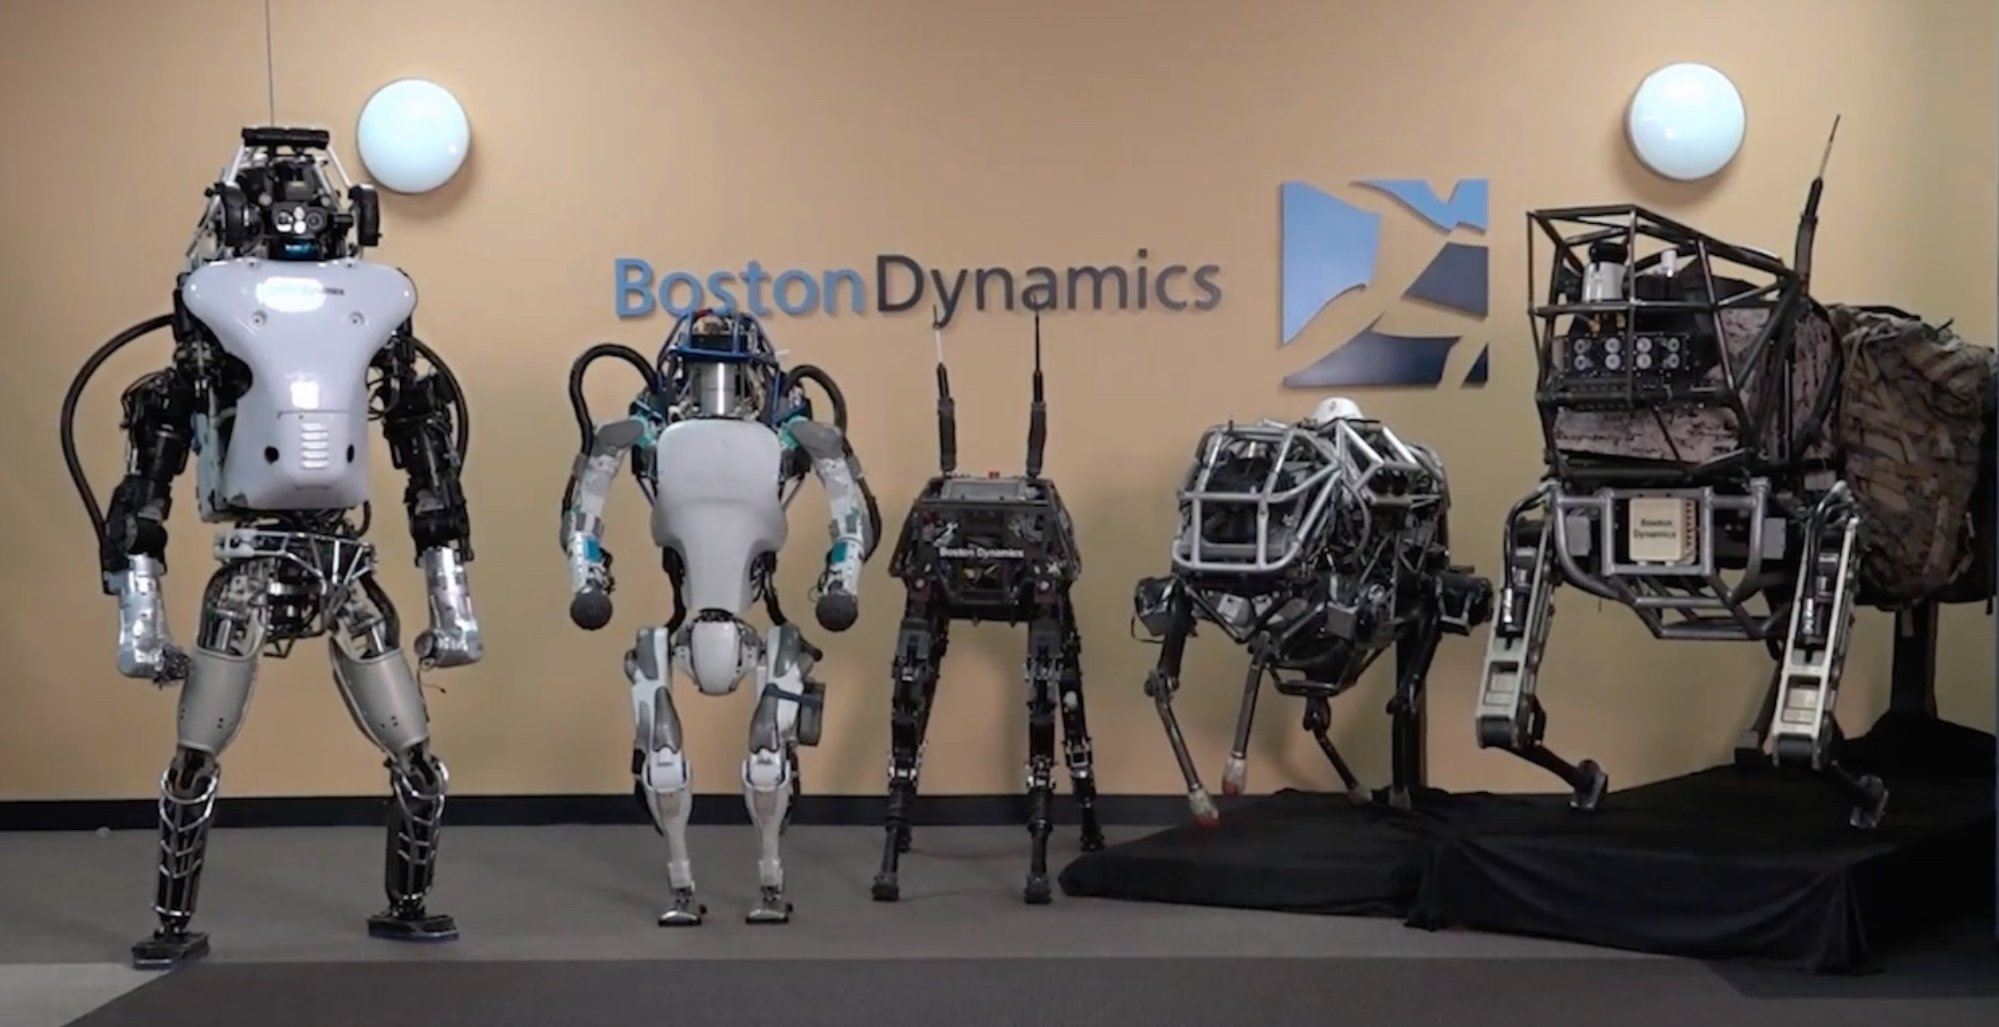 Photo Credit: Boston Dynamics